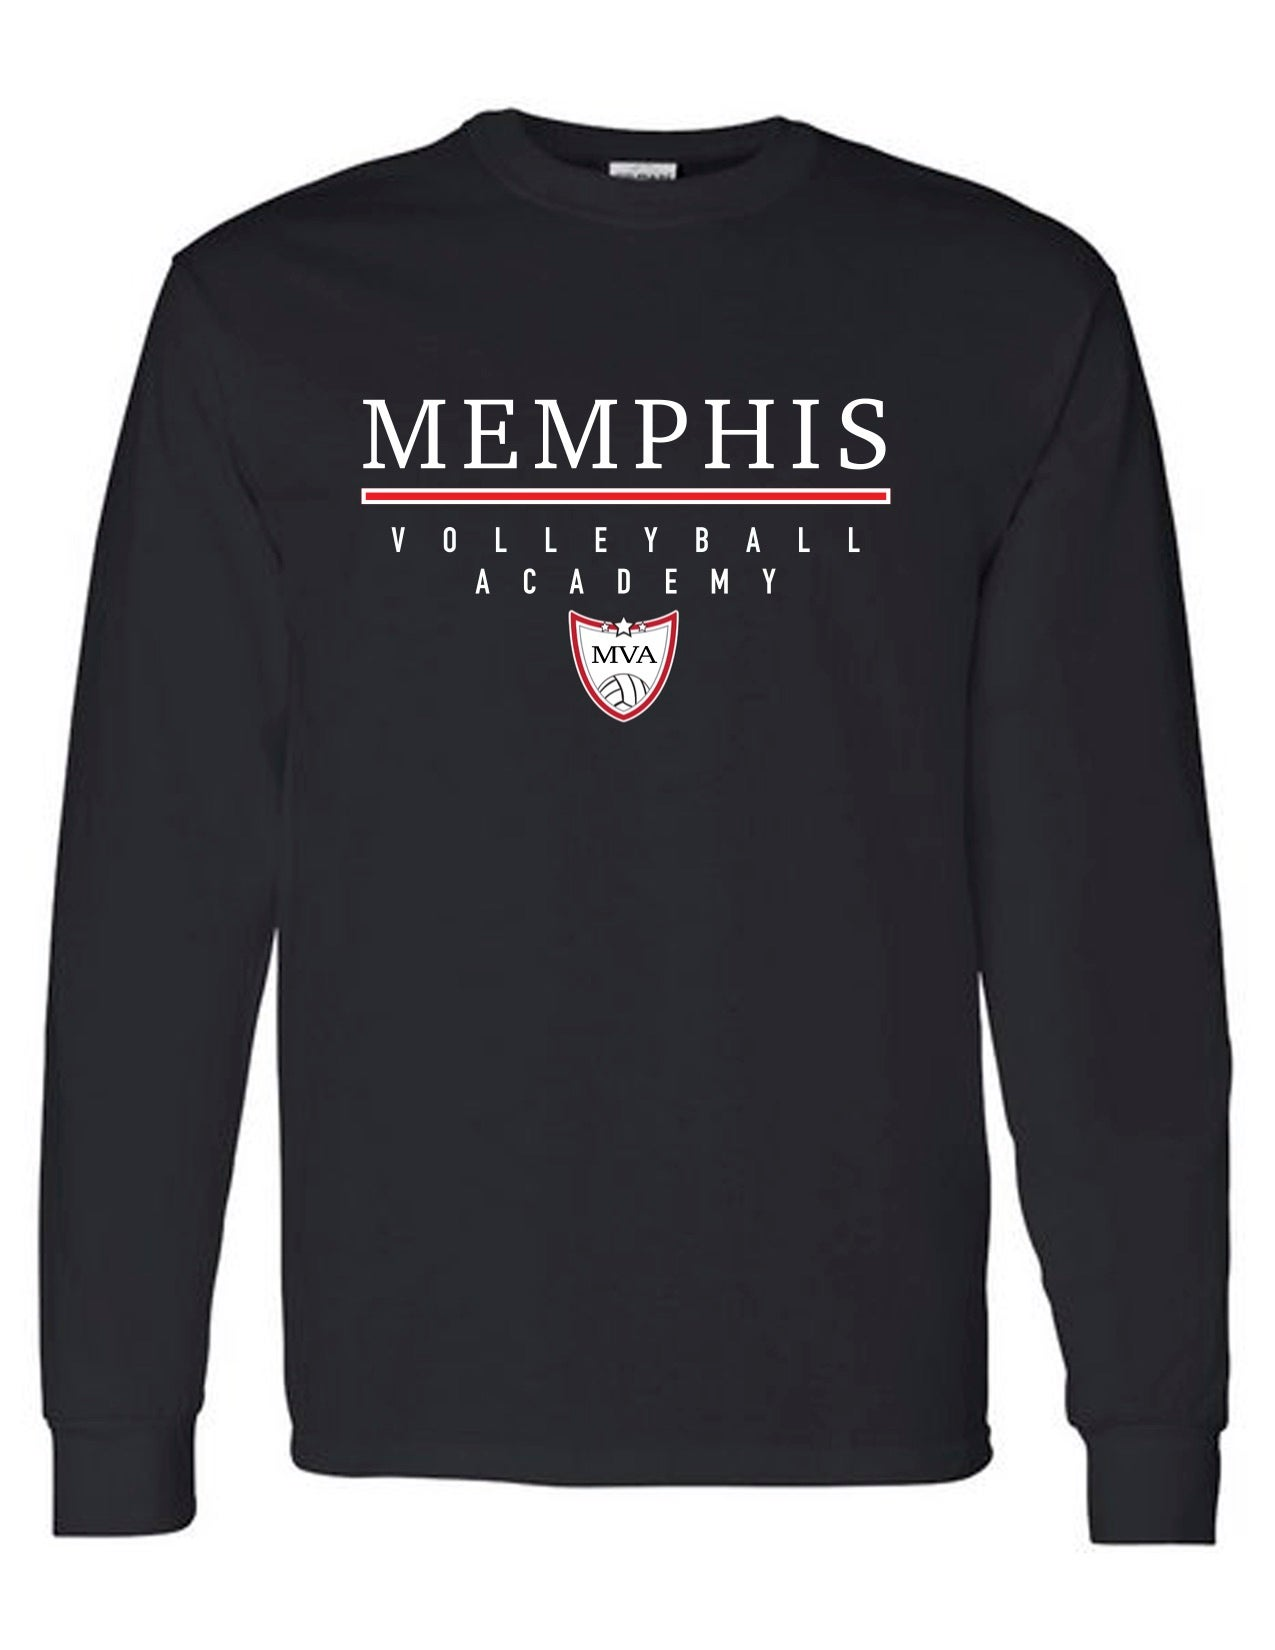 Image of Memphis Volleyball Academy Long Sleeve Tshirt - (Multiple Color Options)